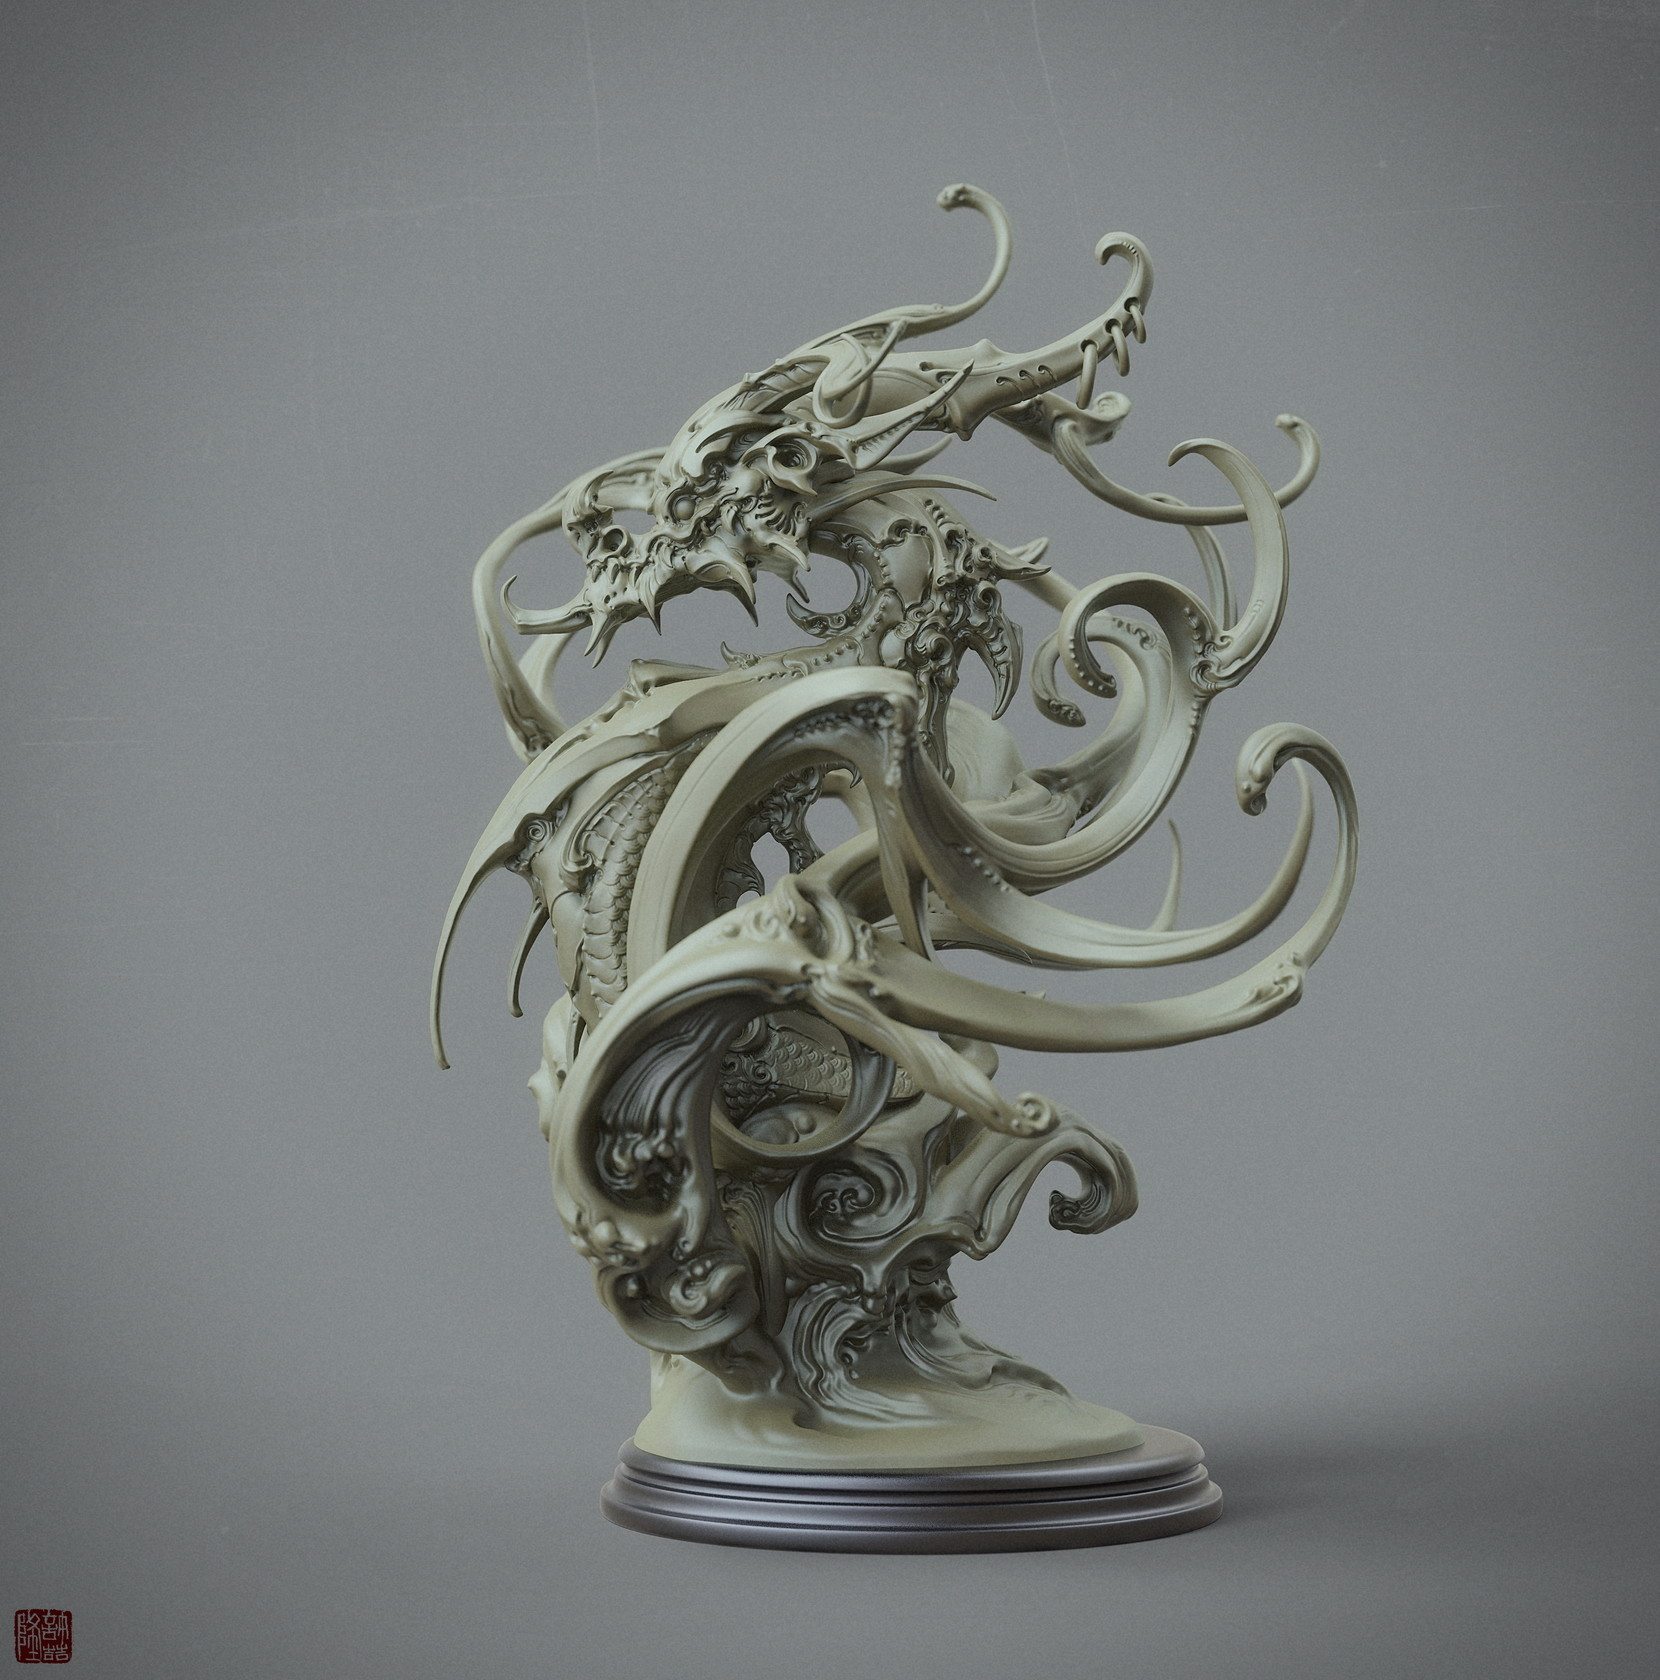 Zhelong xu keyshot render02 websize